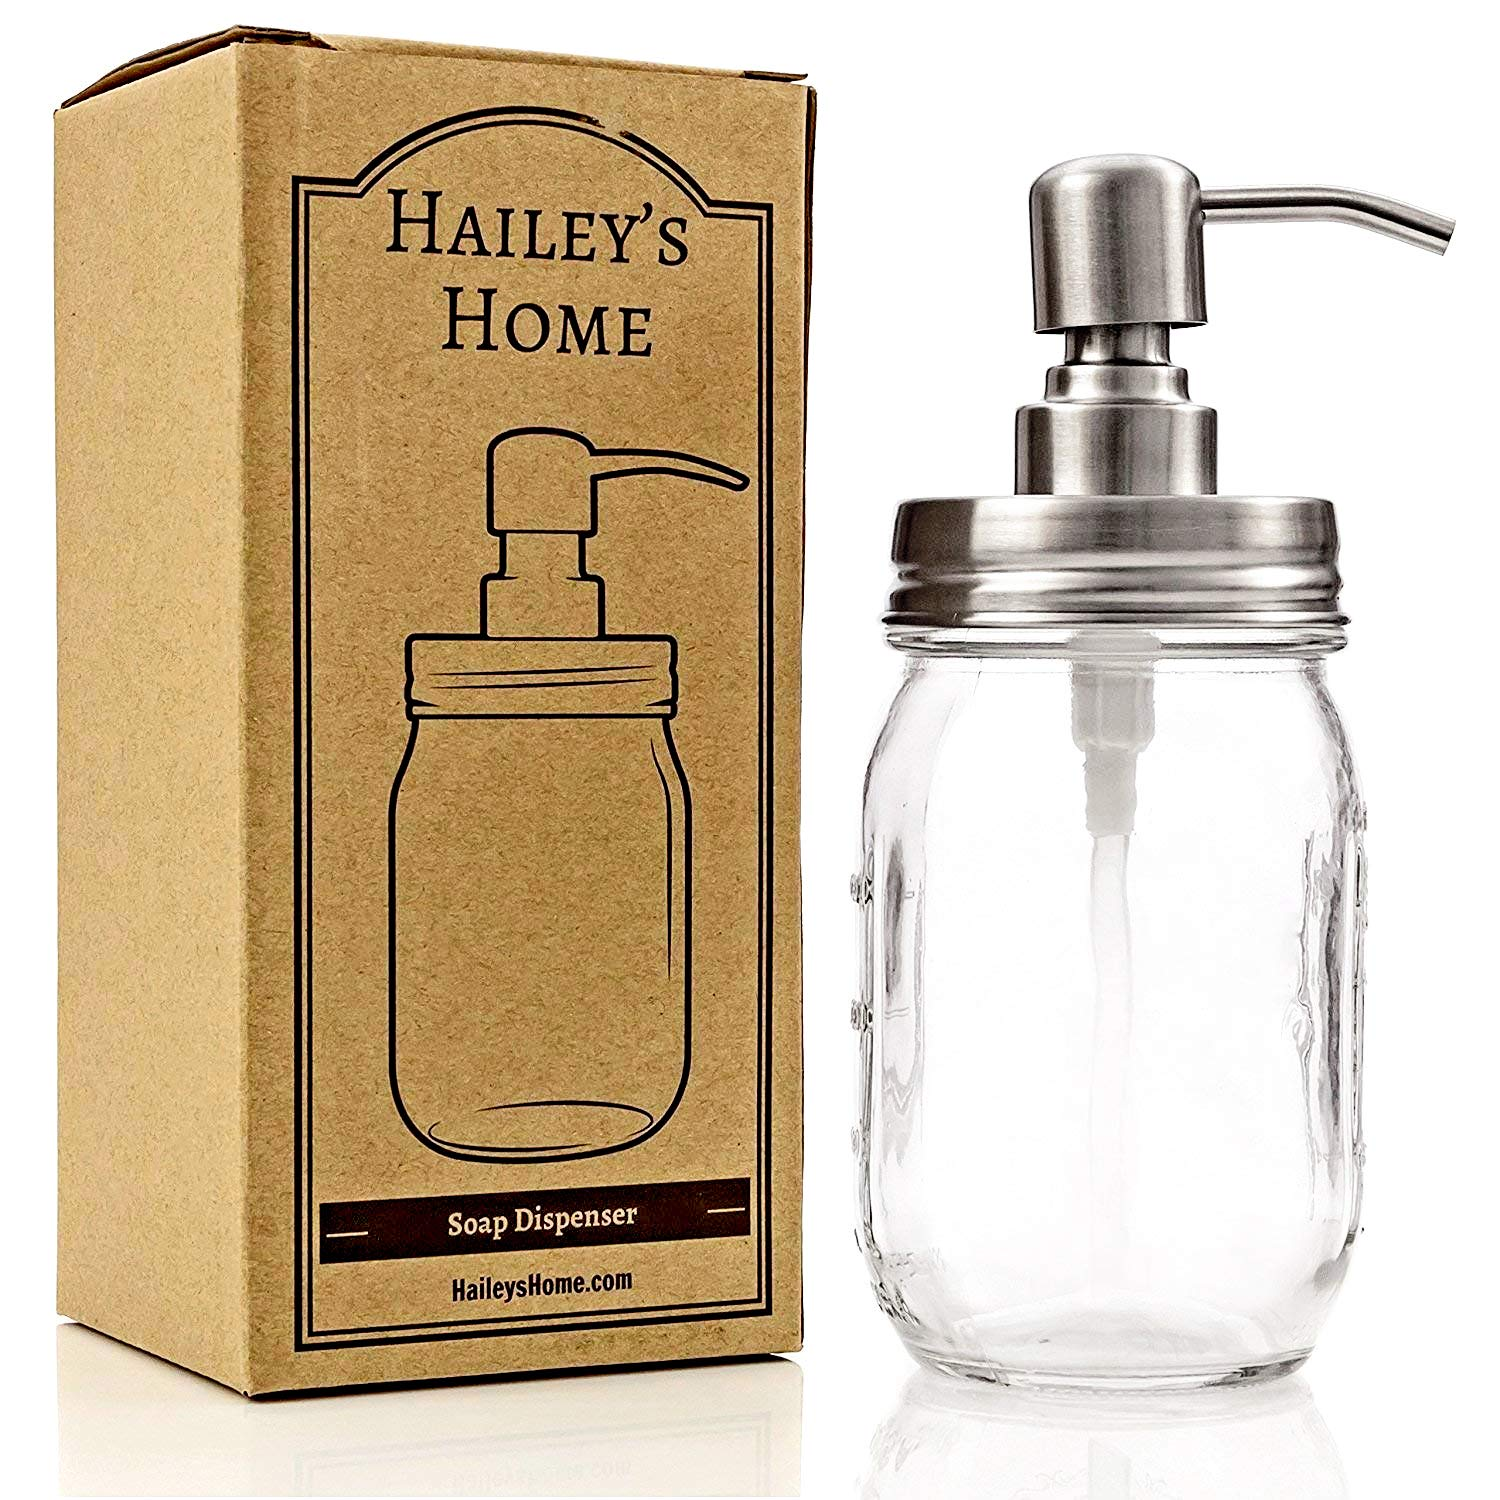 Hailey's Home Jar Soap Dispenser (Silver) Hailey's Home